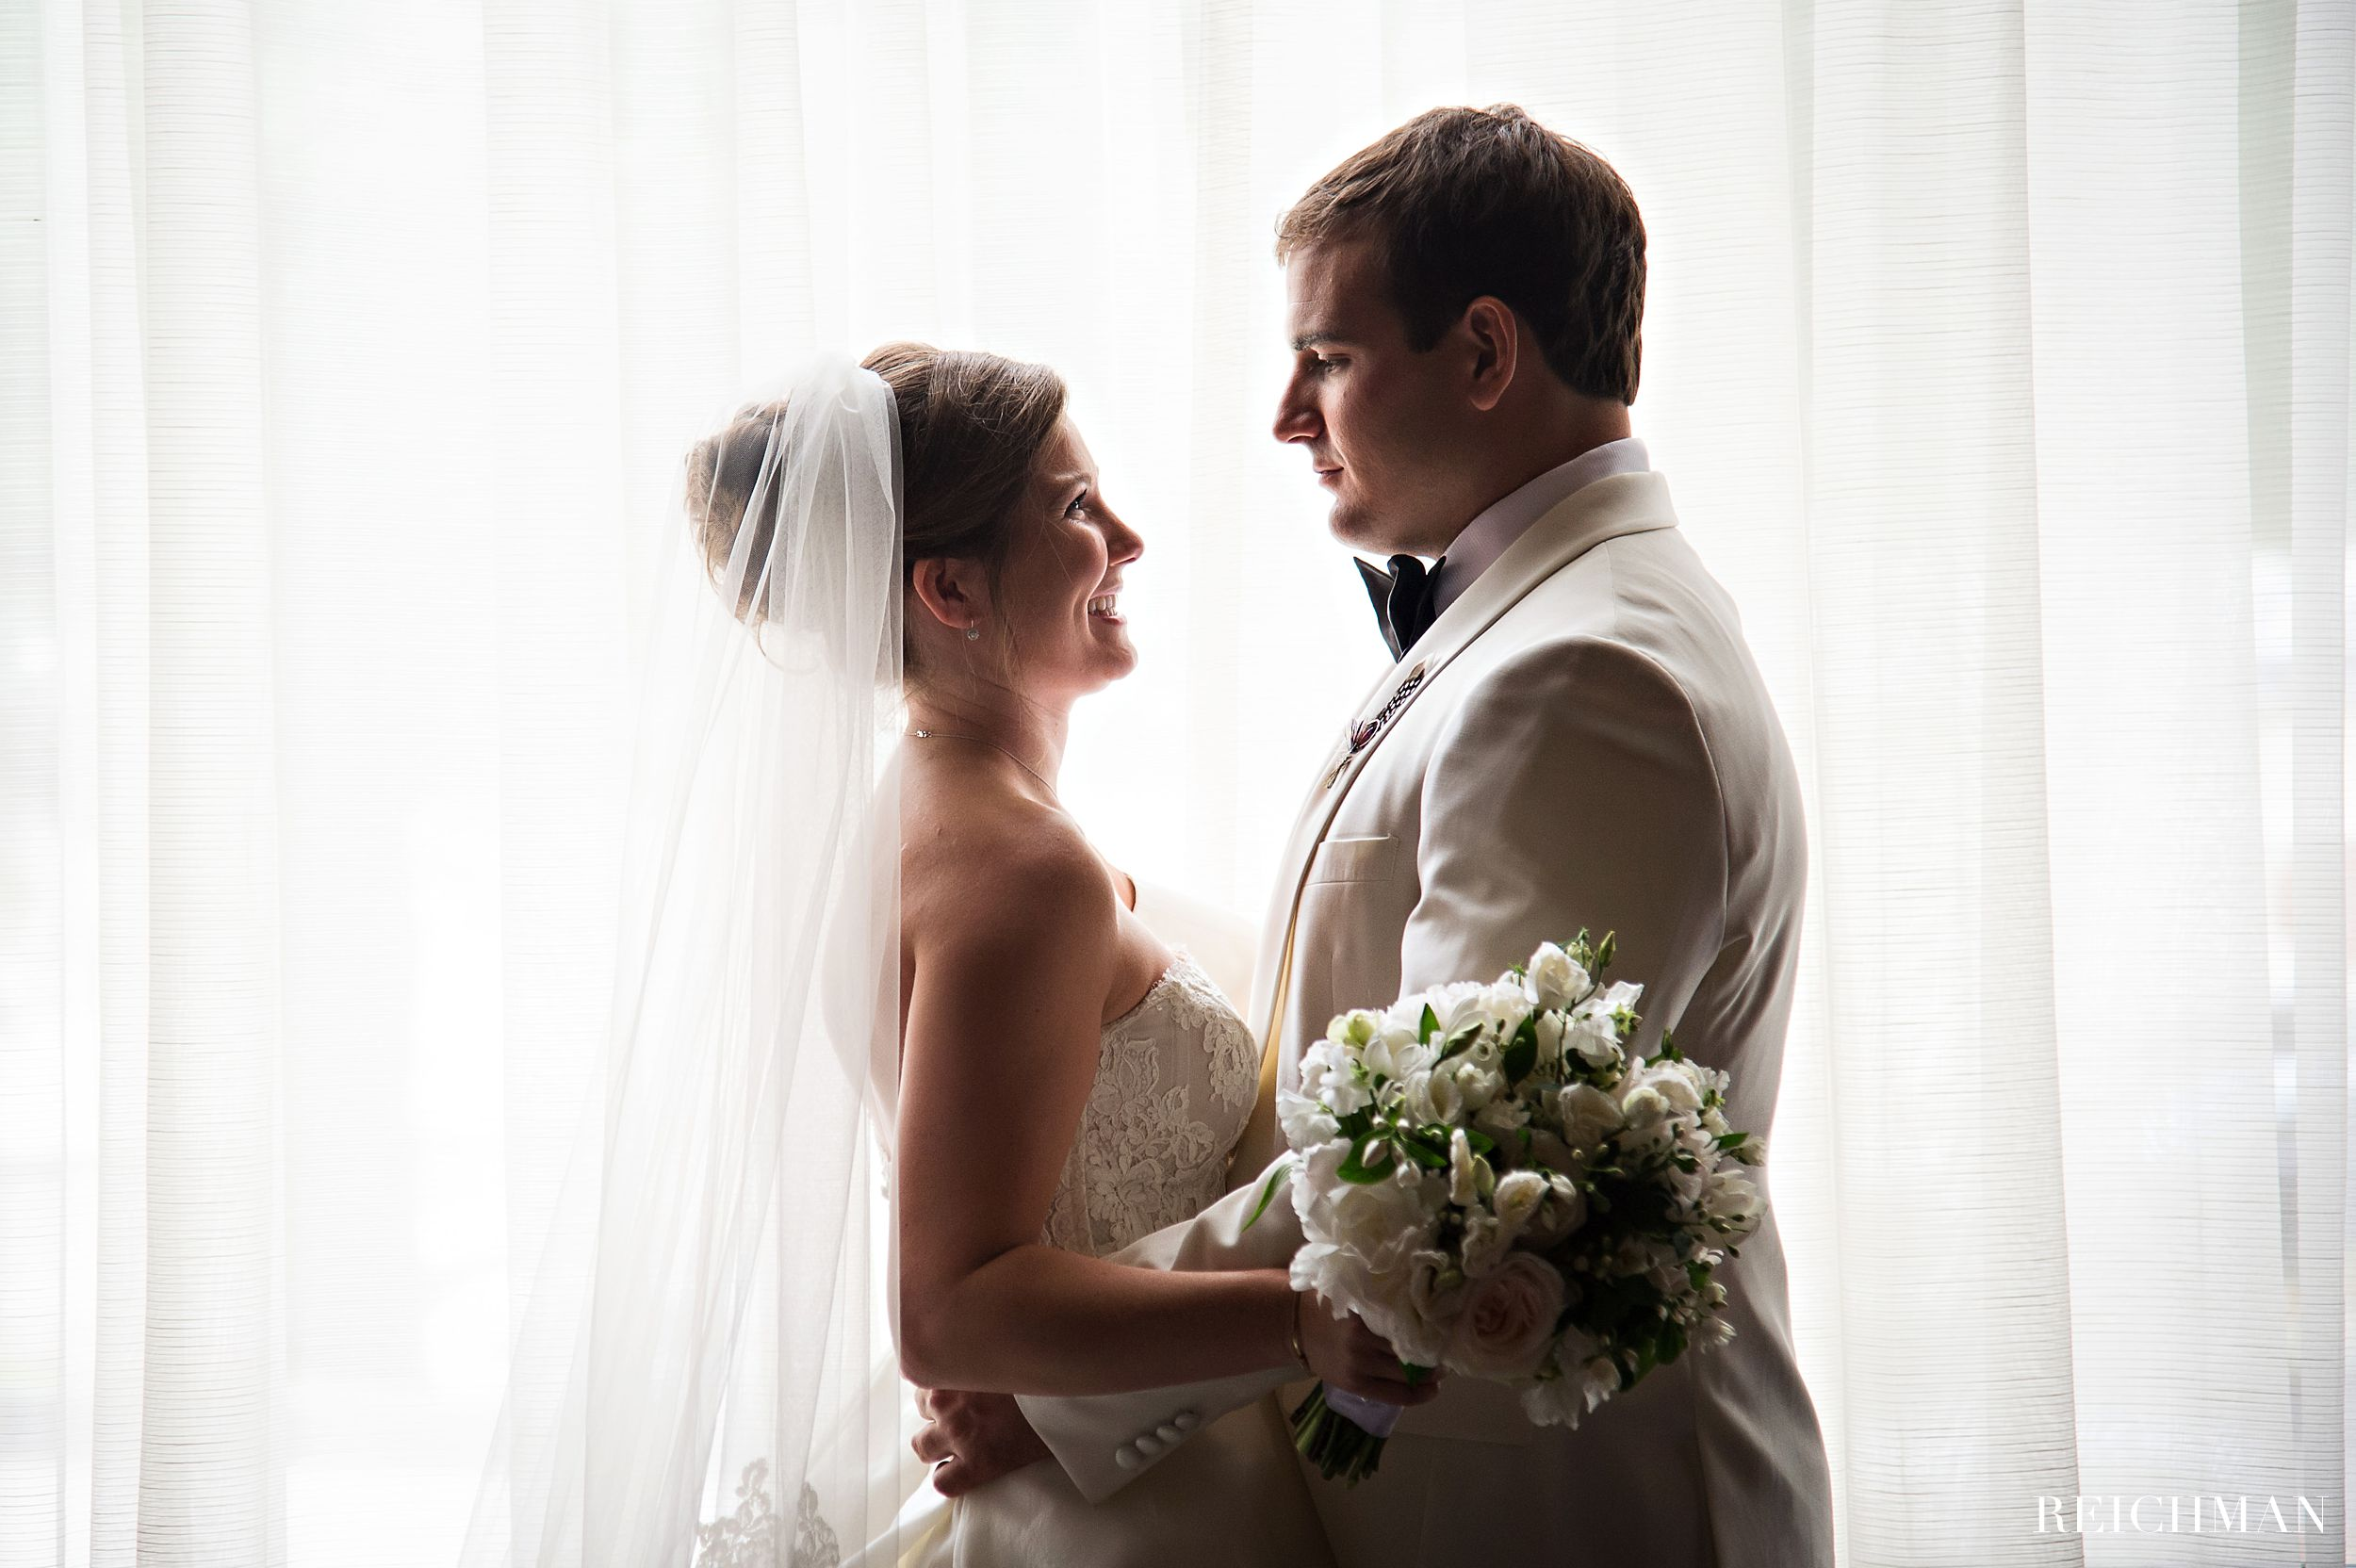 029_RitzCarltonBuckhead_Wedding-029